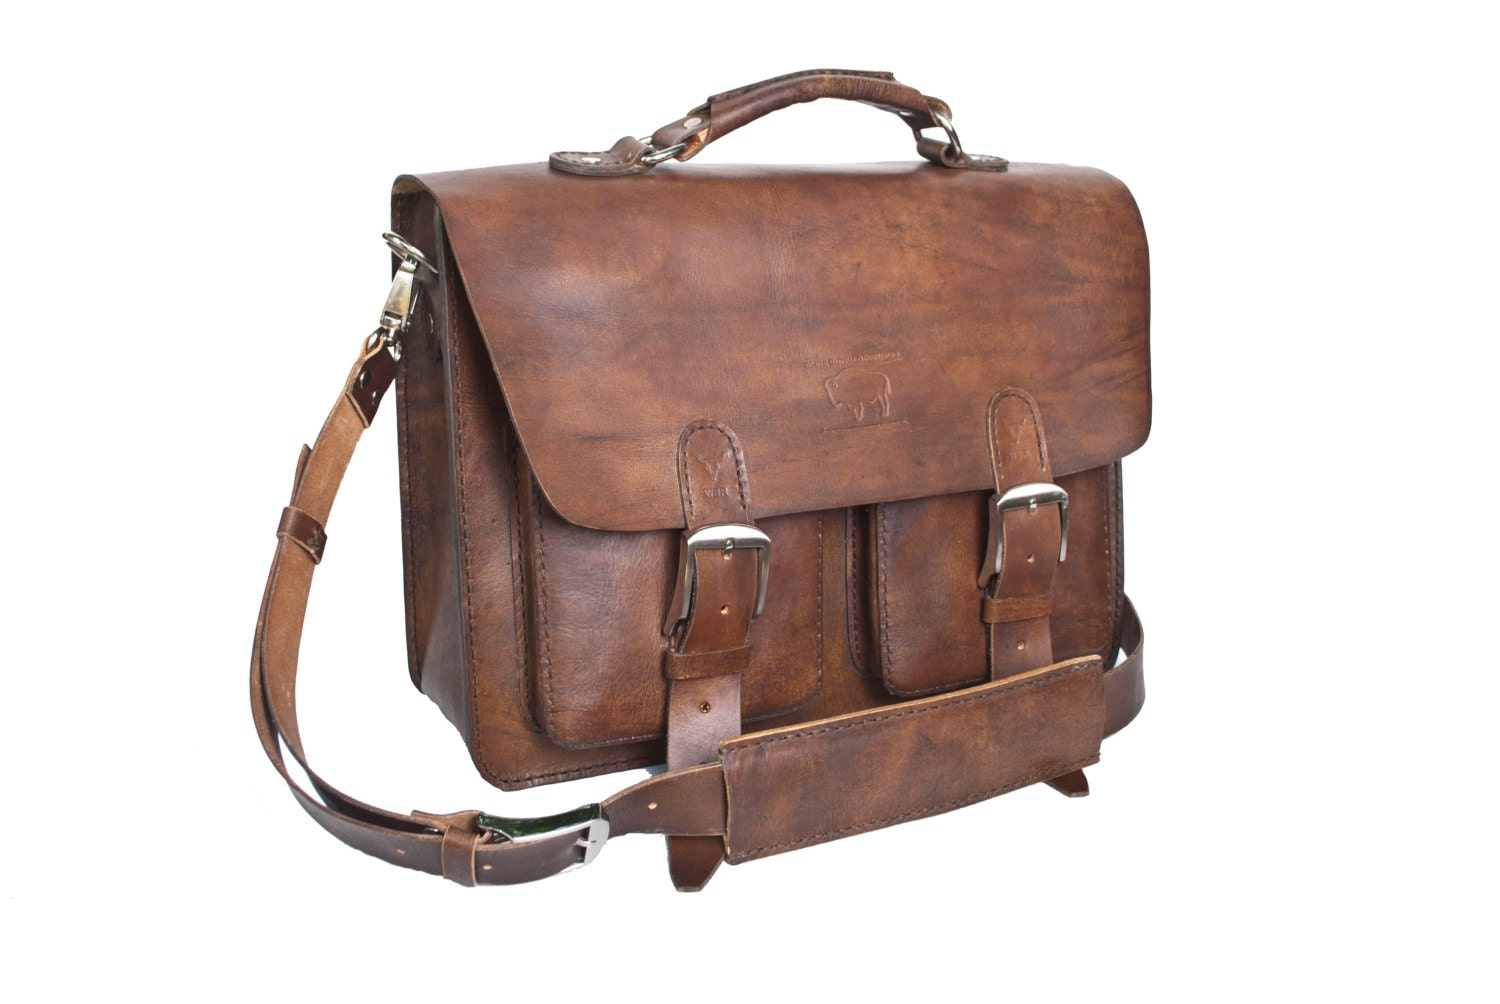 Rustic Brown Leather Messenger Bag Men's Women's